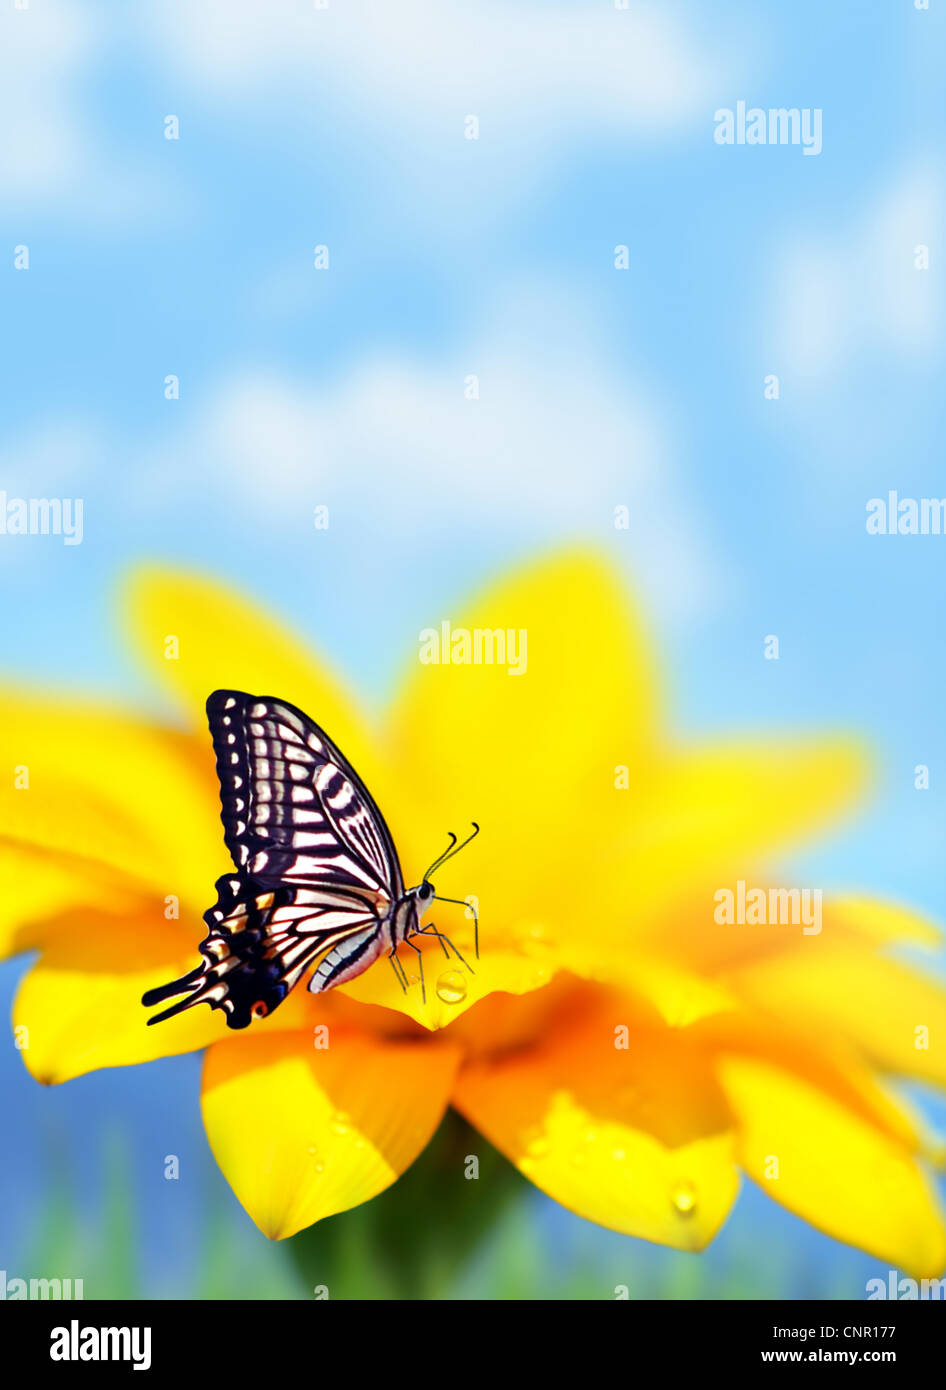 Monarch butterfly on yellow flower, natural background, selective focus - Stock Image